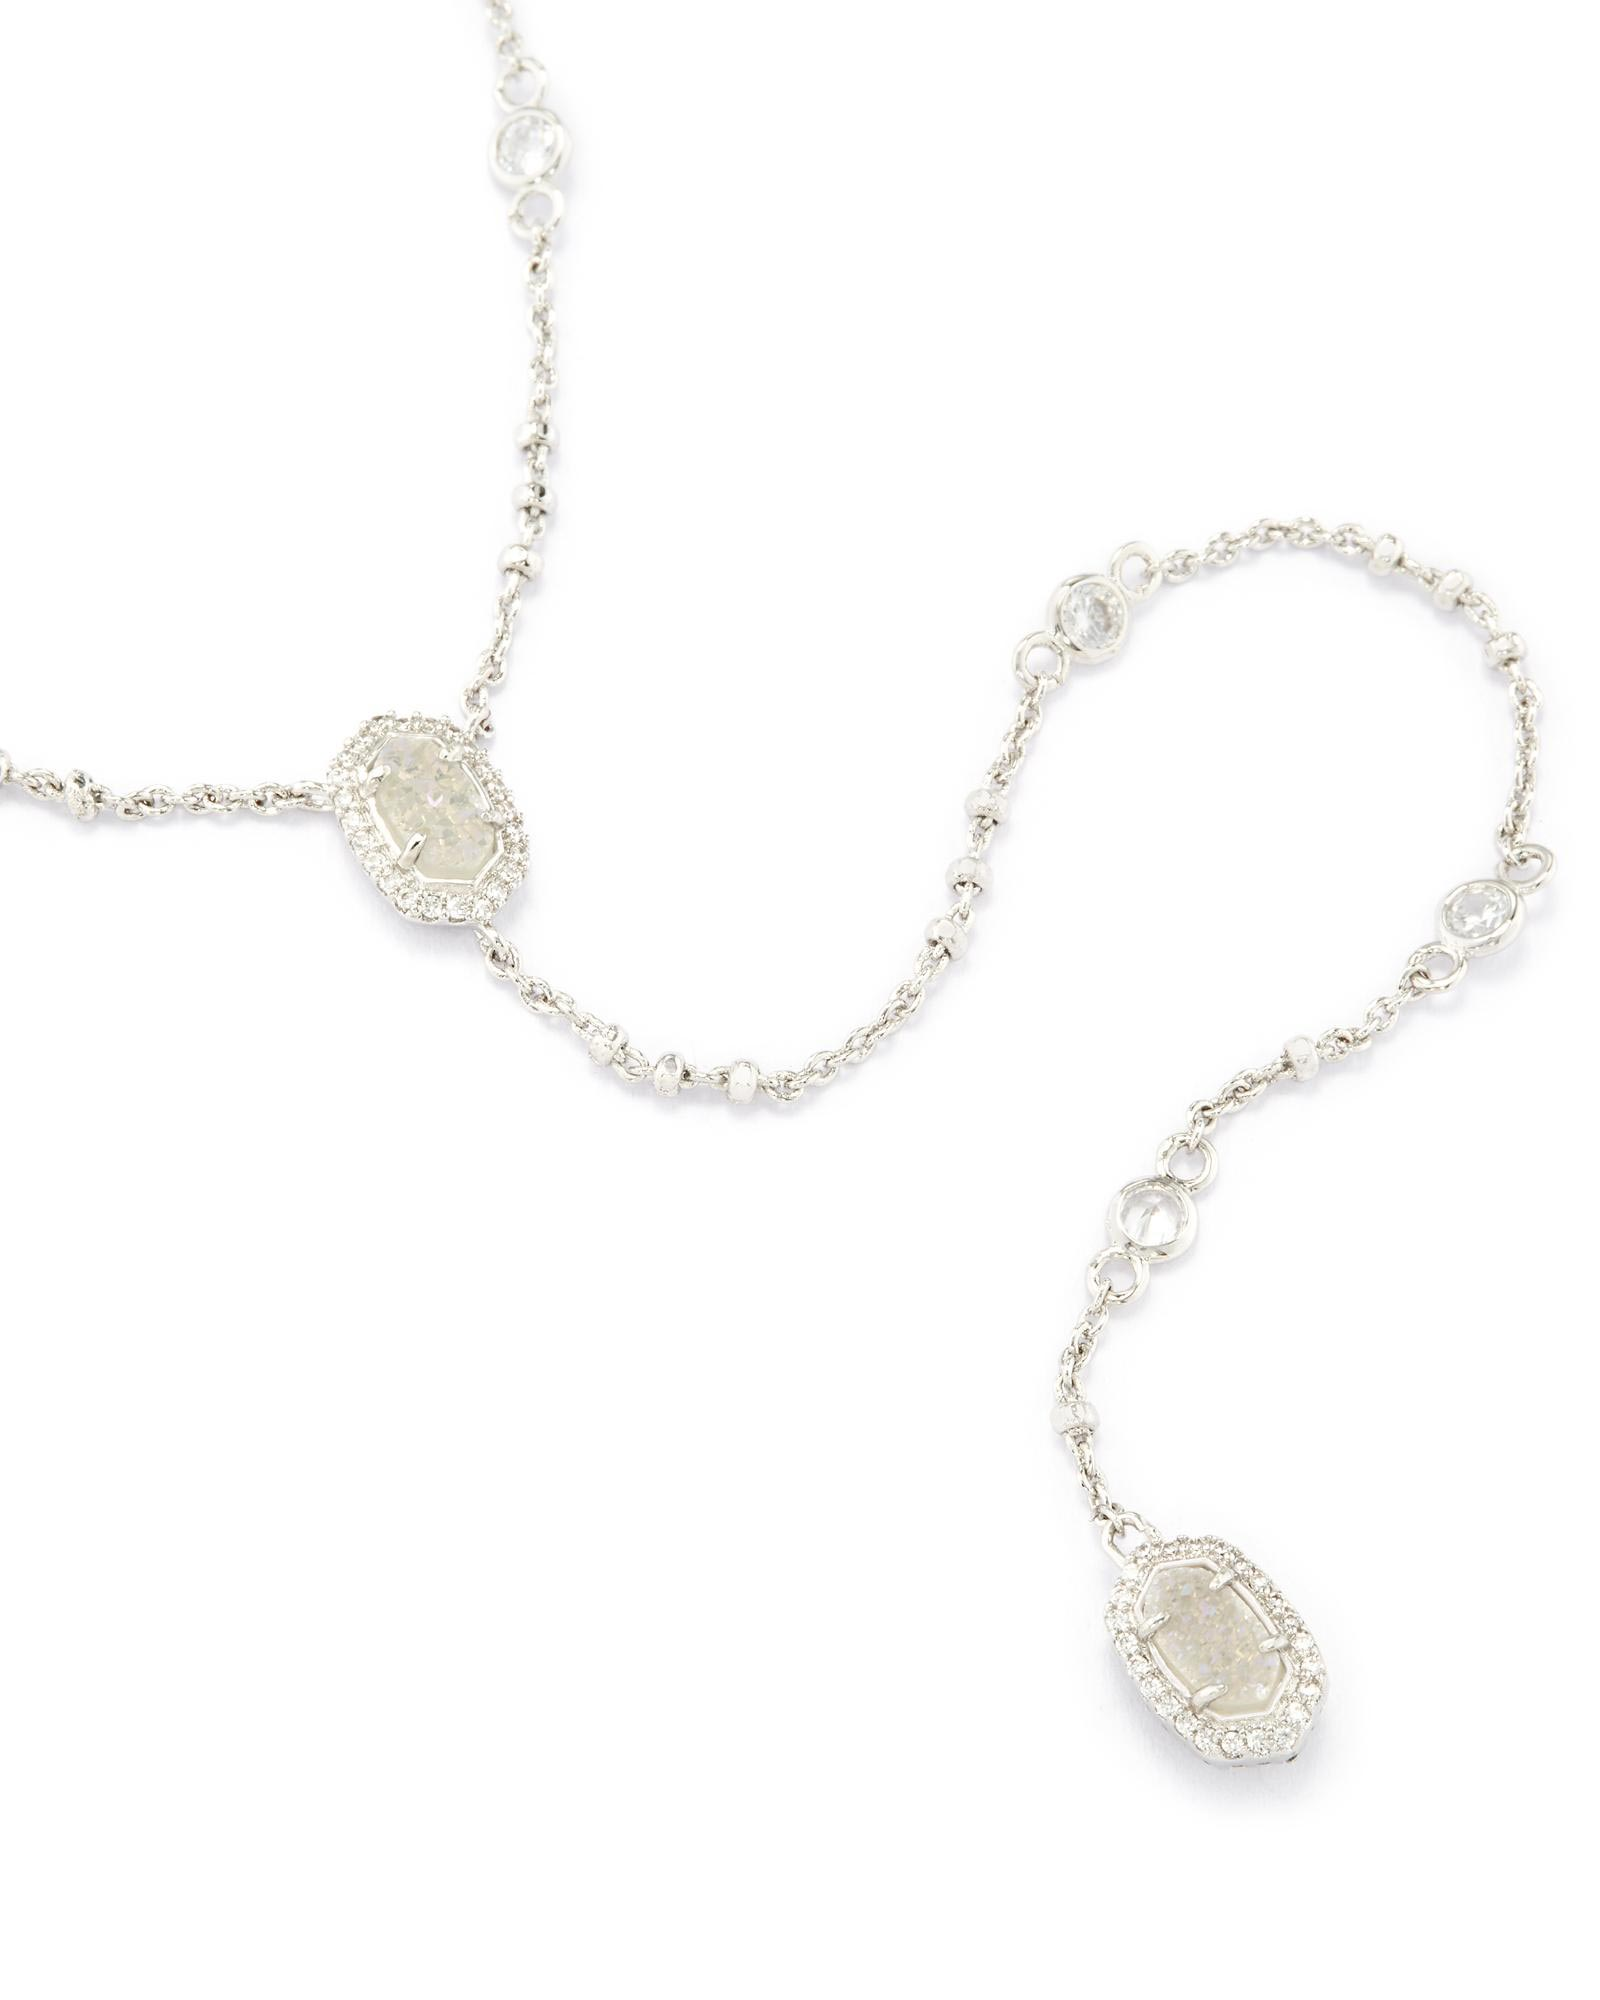 Claudia Lariat Necklace in Silver